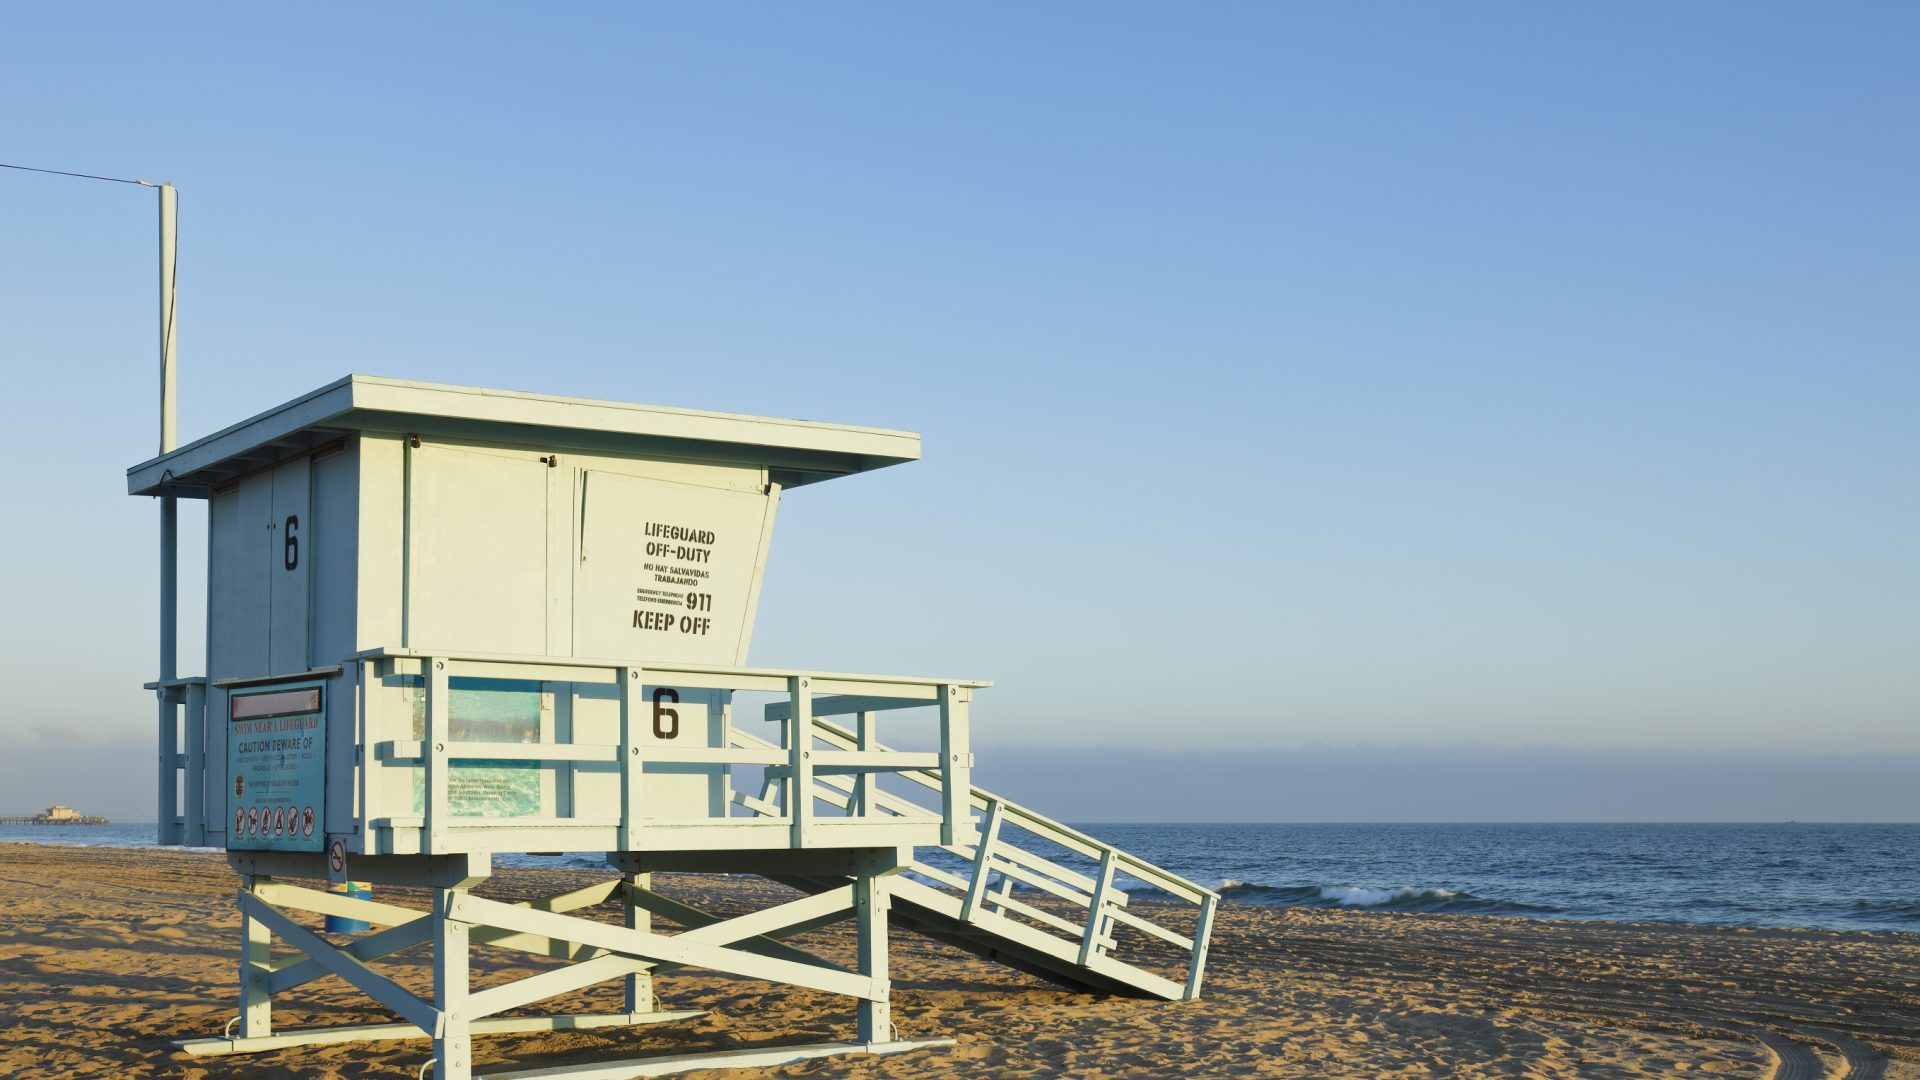 Lifeguard Stand on Santa Monica Beach